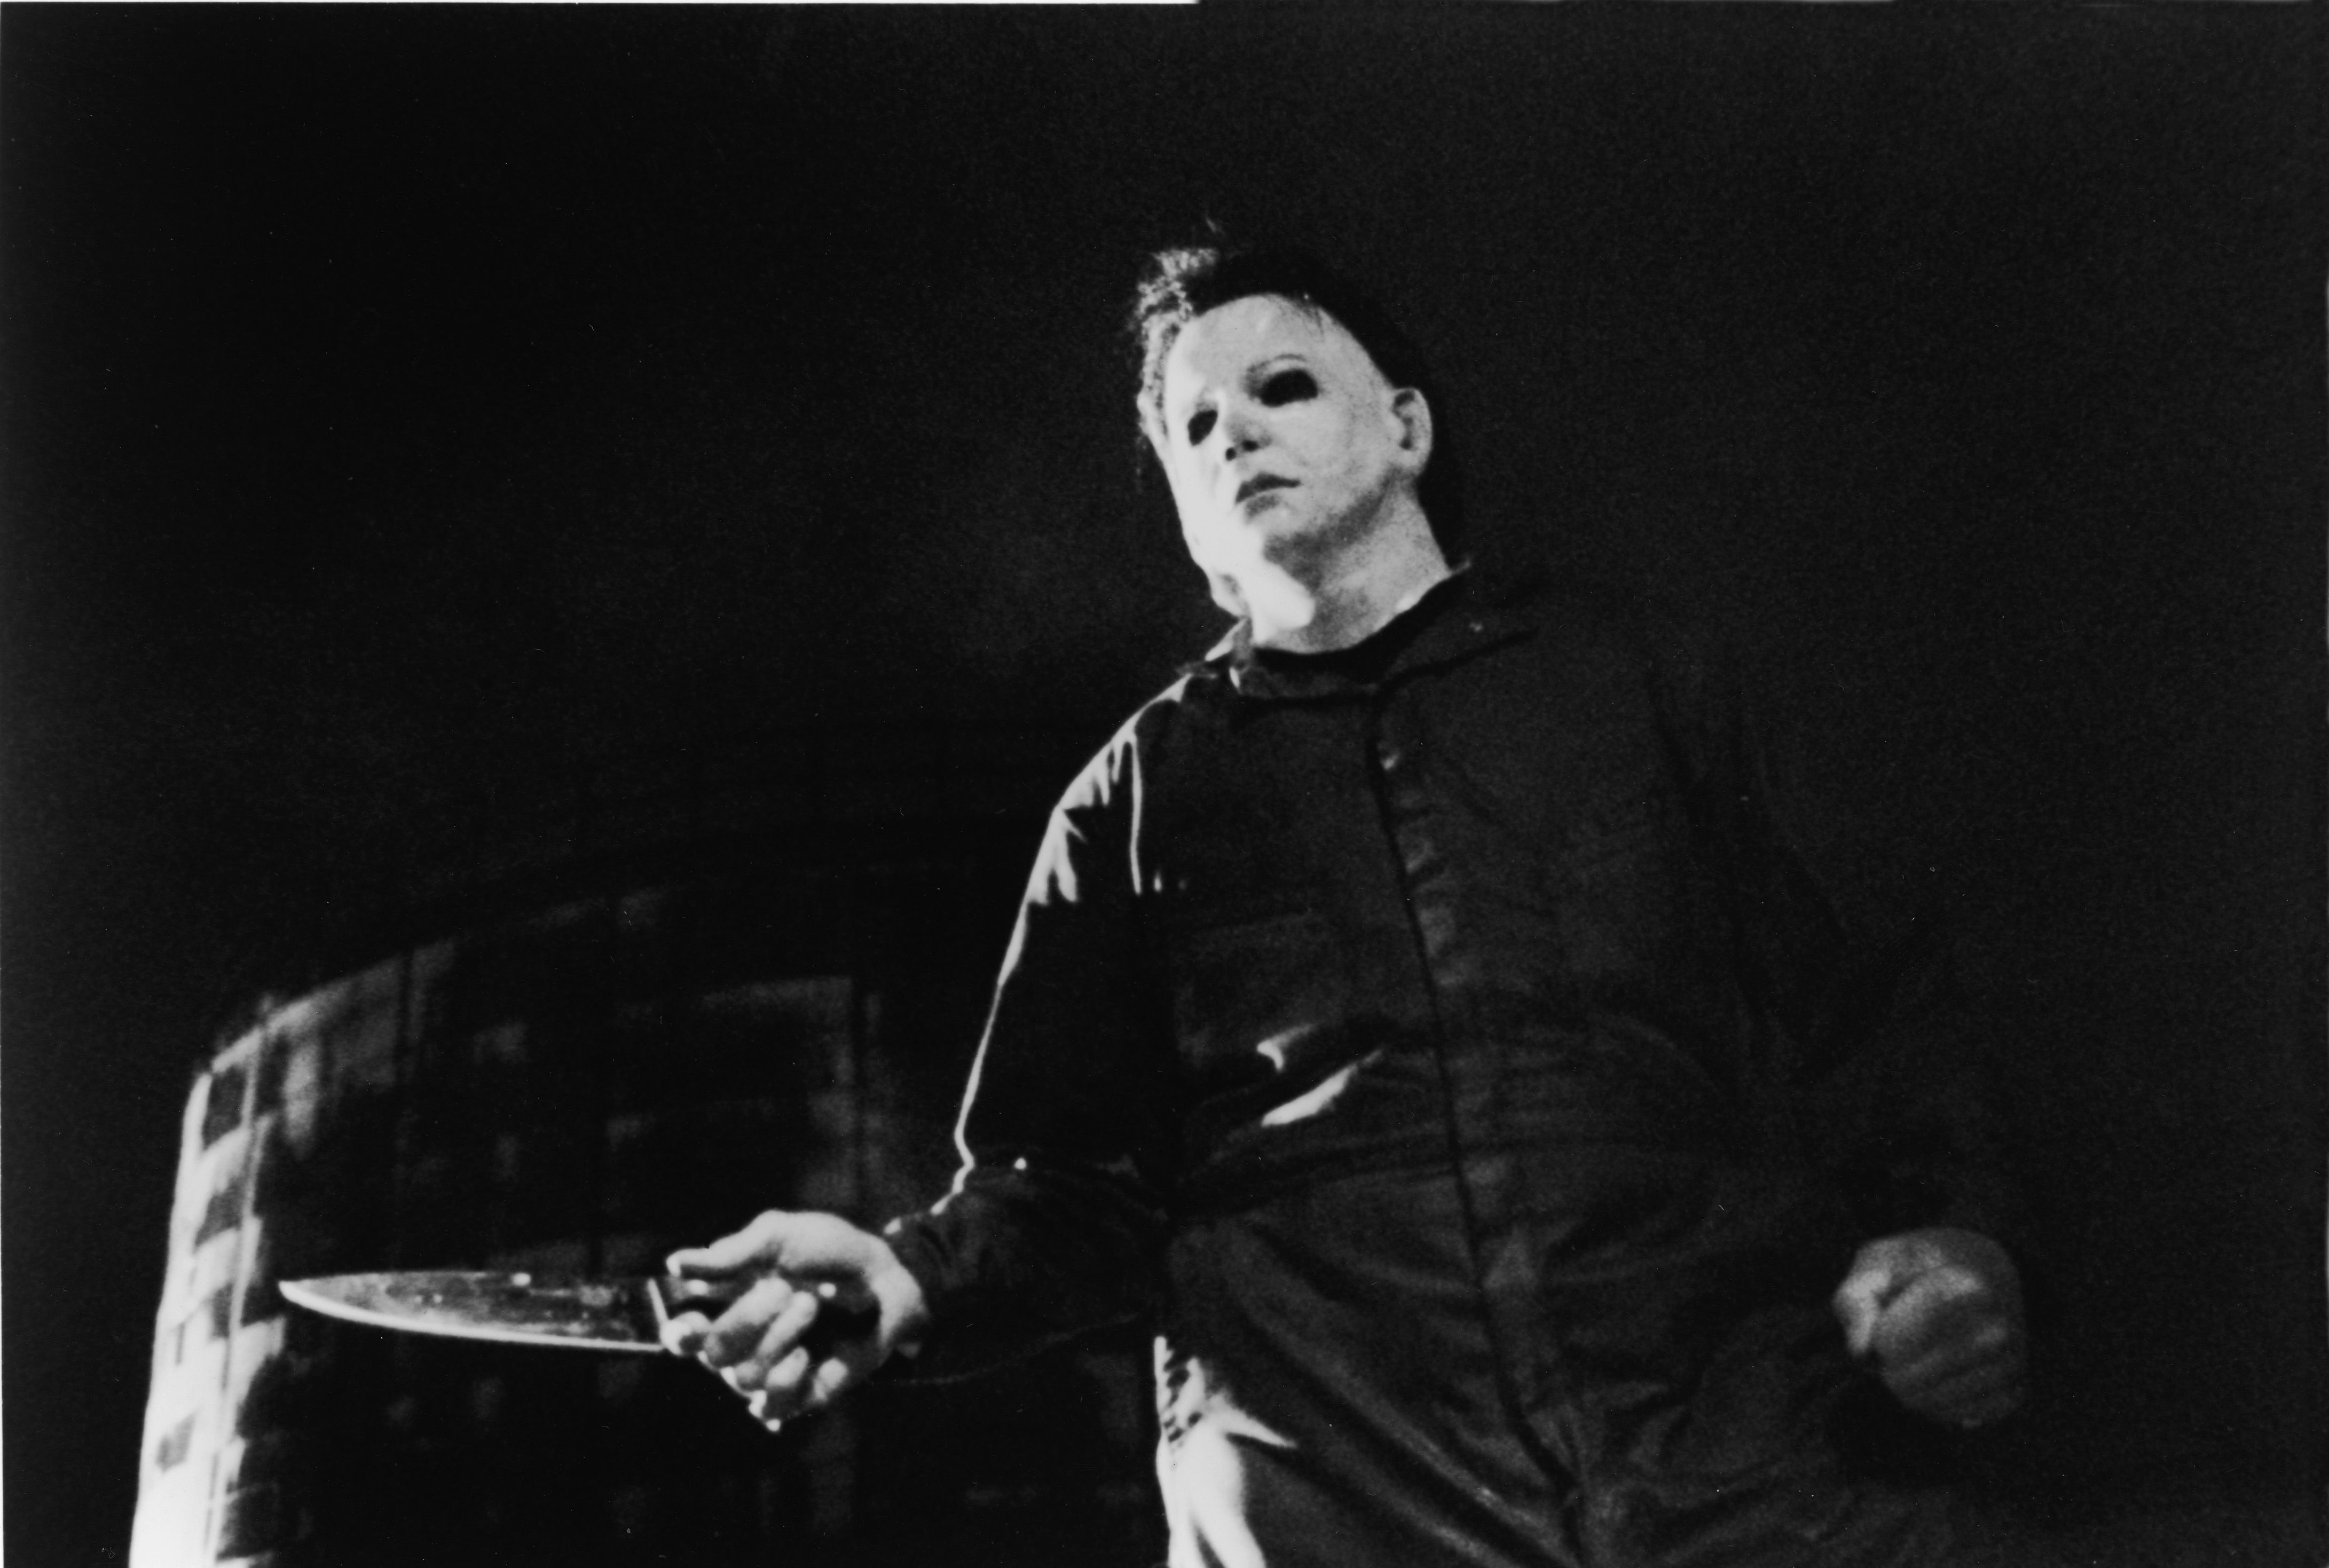 halloween movie's michael myers was based on true story according to